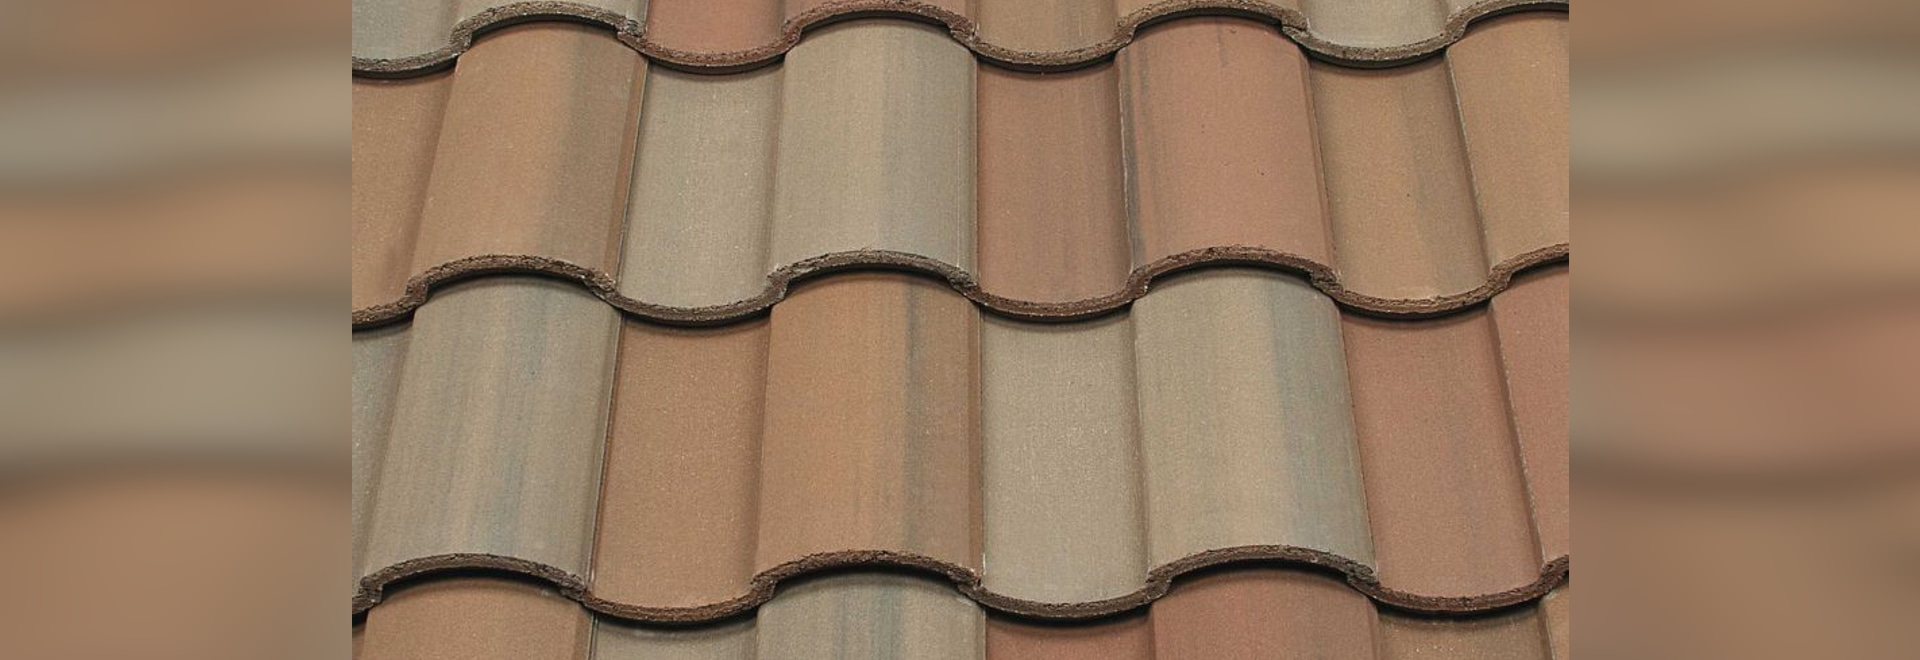 new interlocking roof tile by entegra roof tile - Entegra Roof Tile